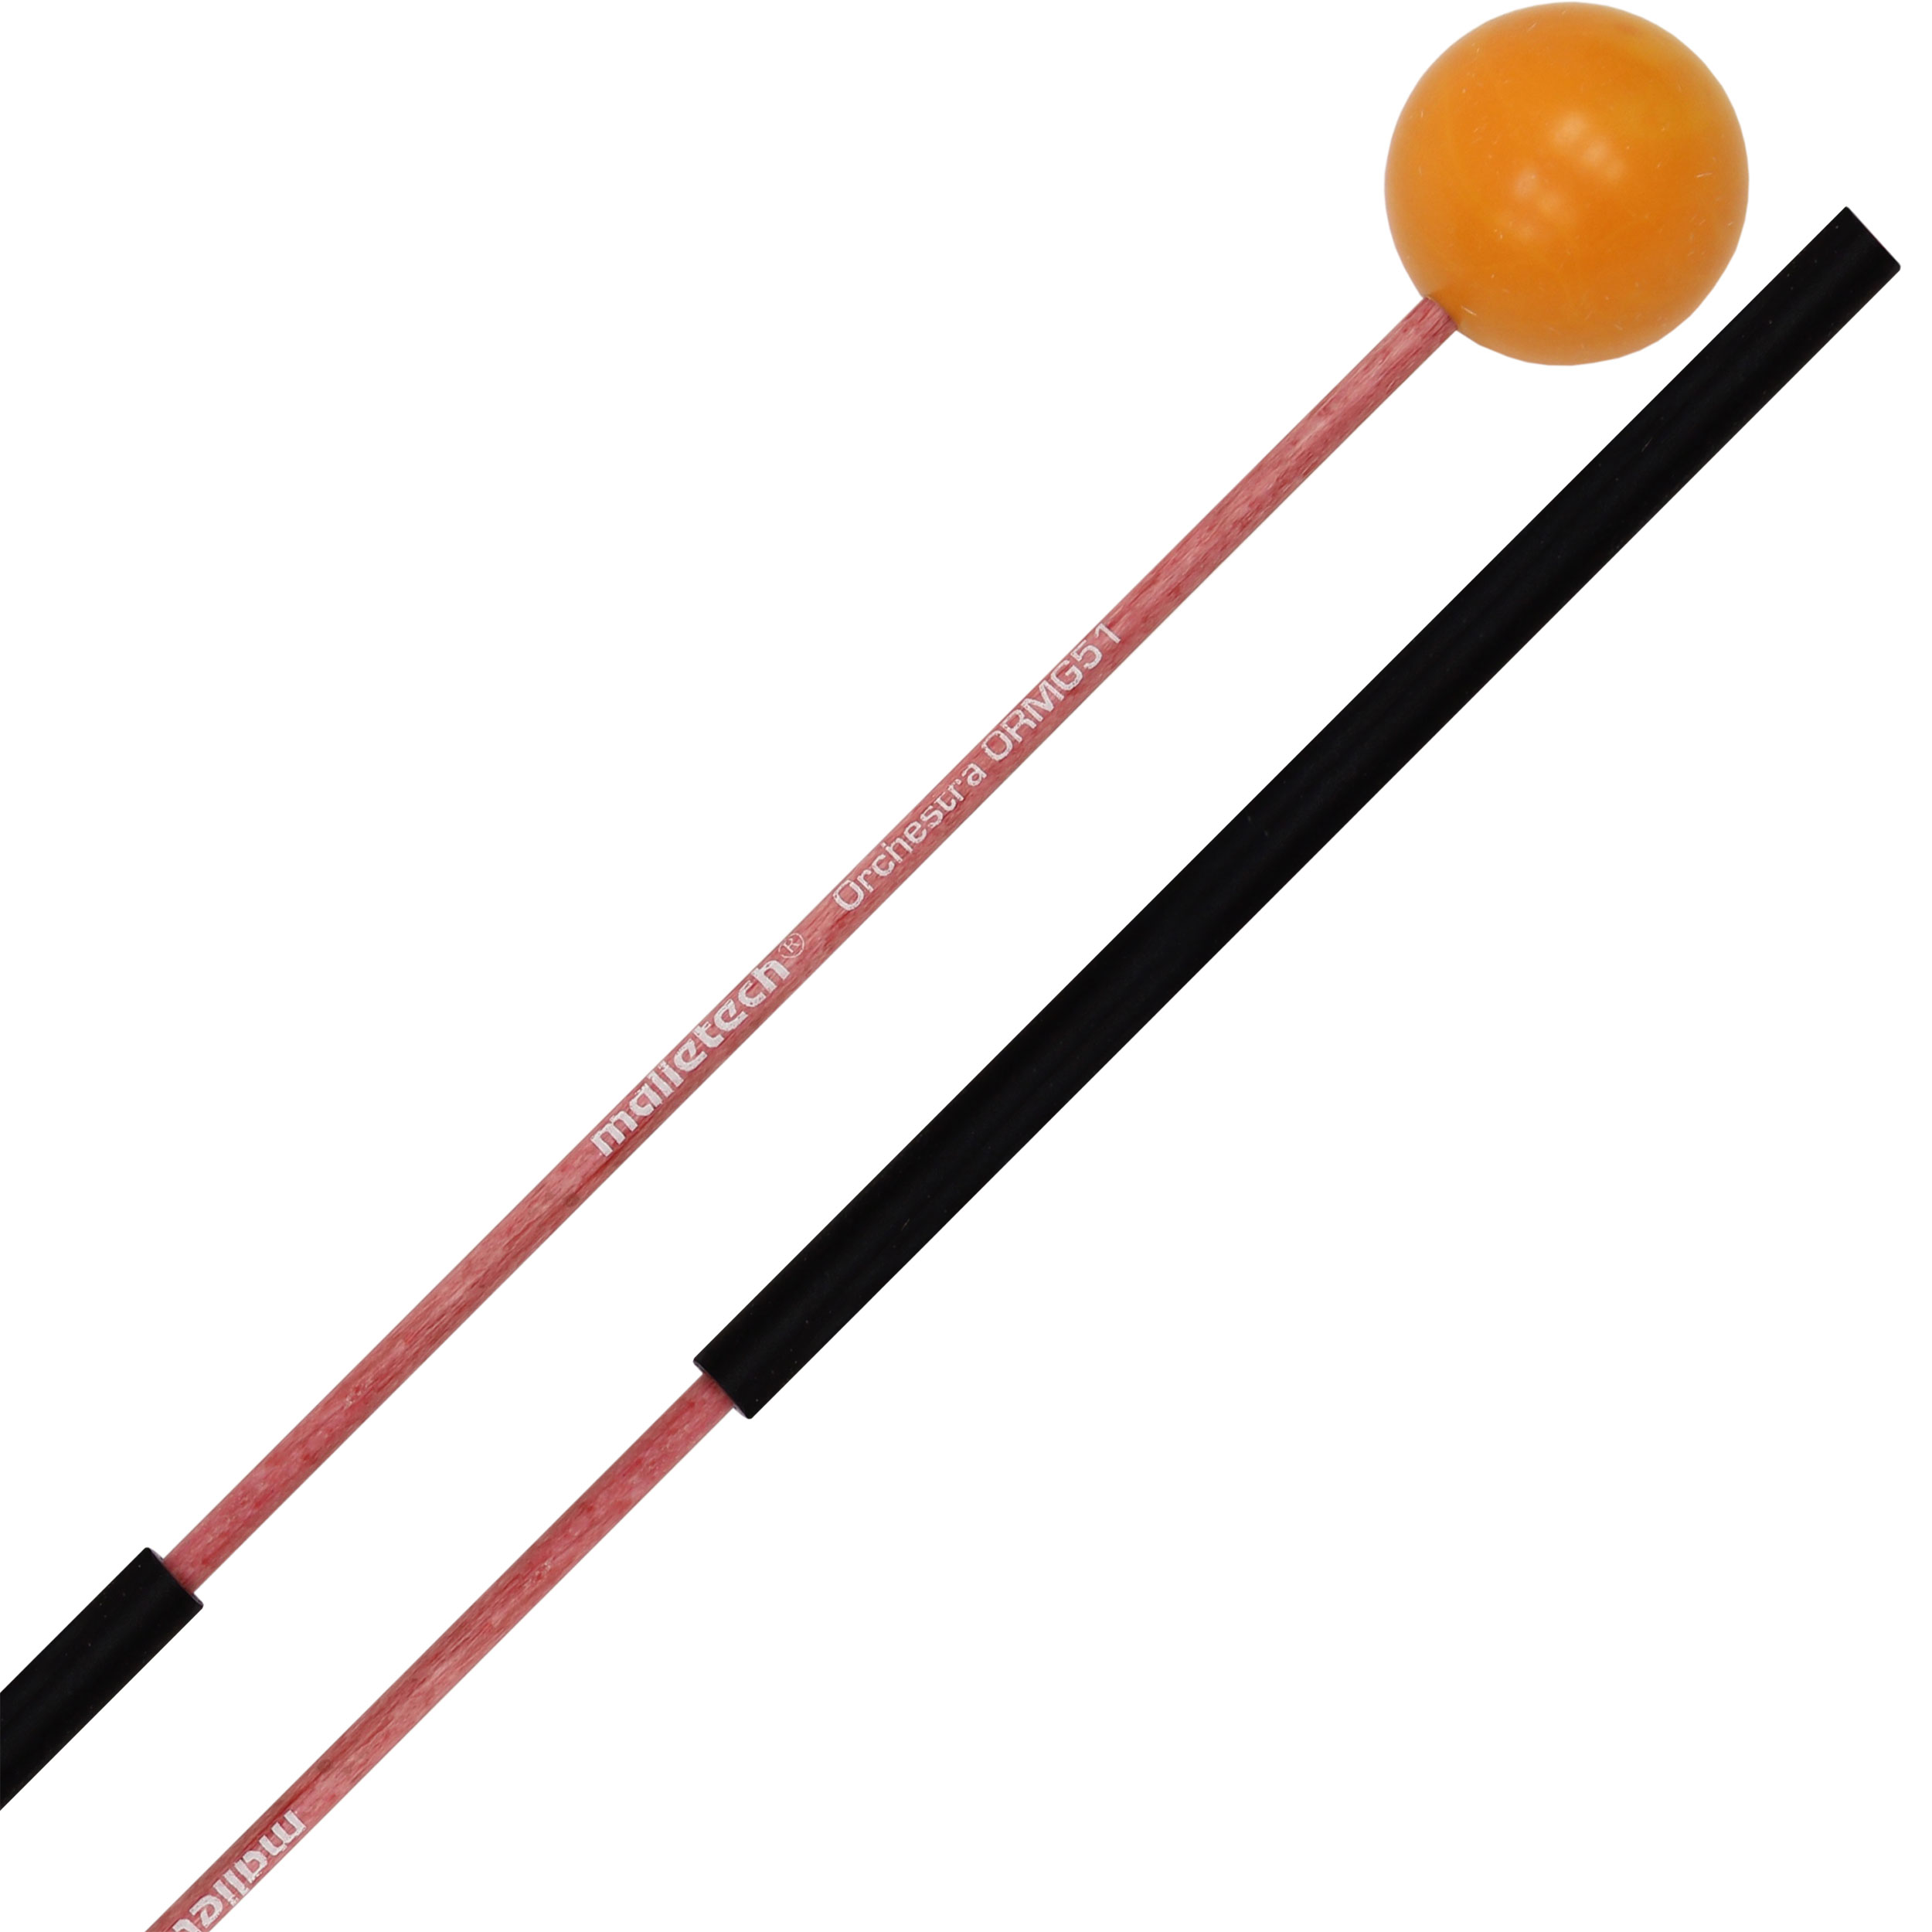 "Malletech Orchestral Series 1"" Orange Mini-Glock Mallets with Thin Fiberglass Shafts"